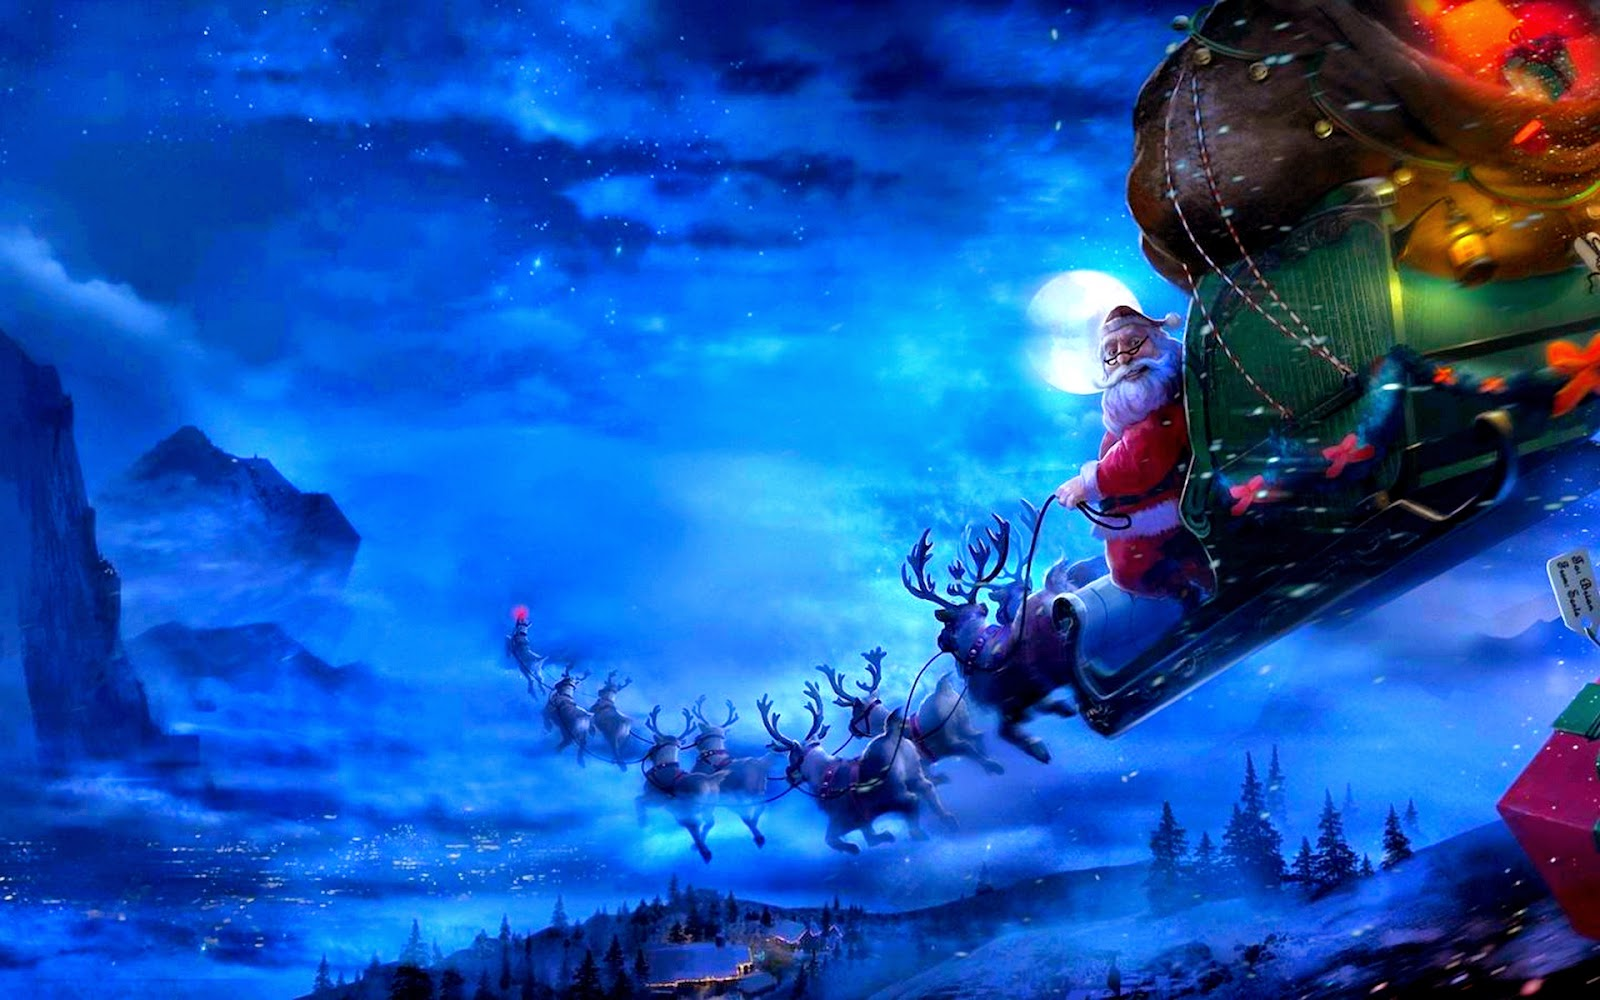 Santa Claus Riding His Sleigh Reindeer At Night